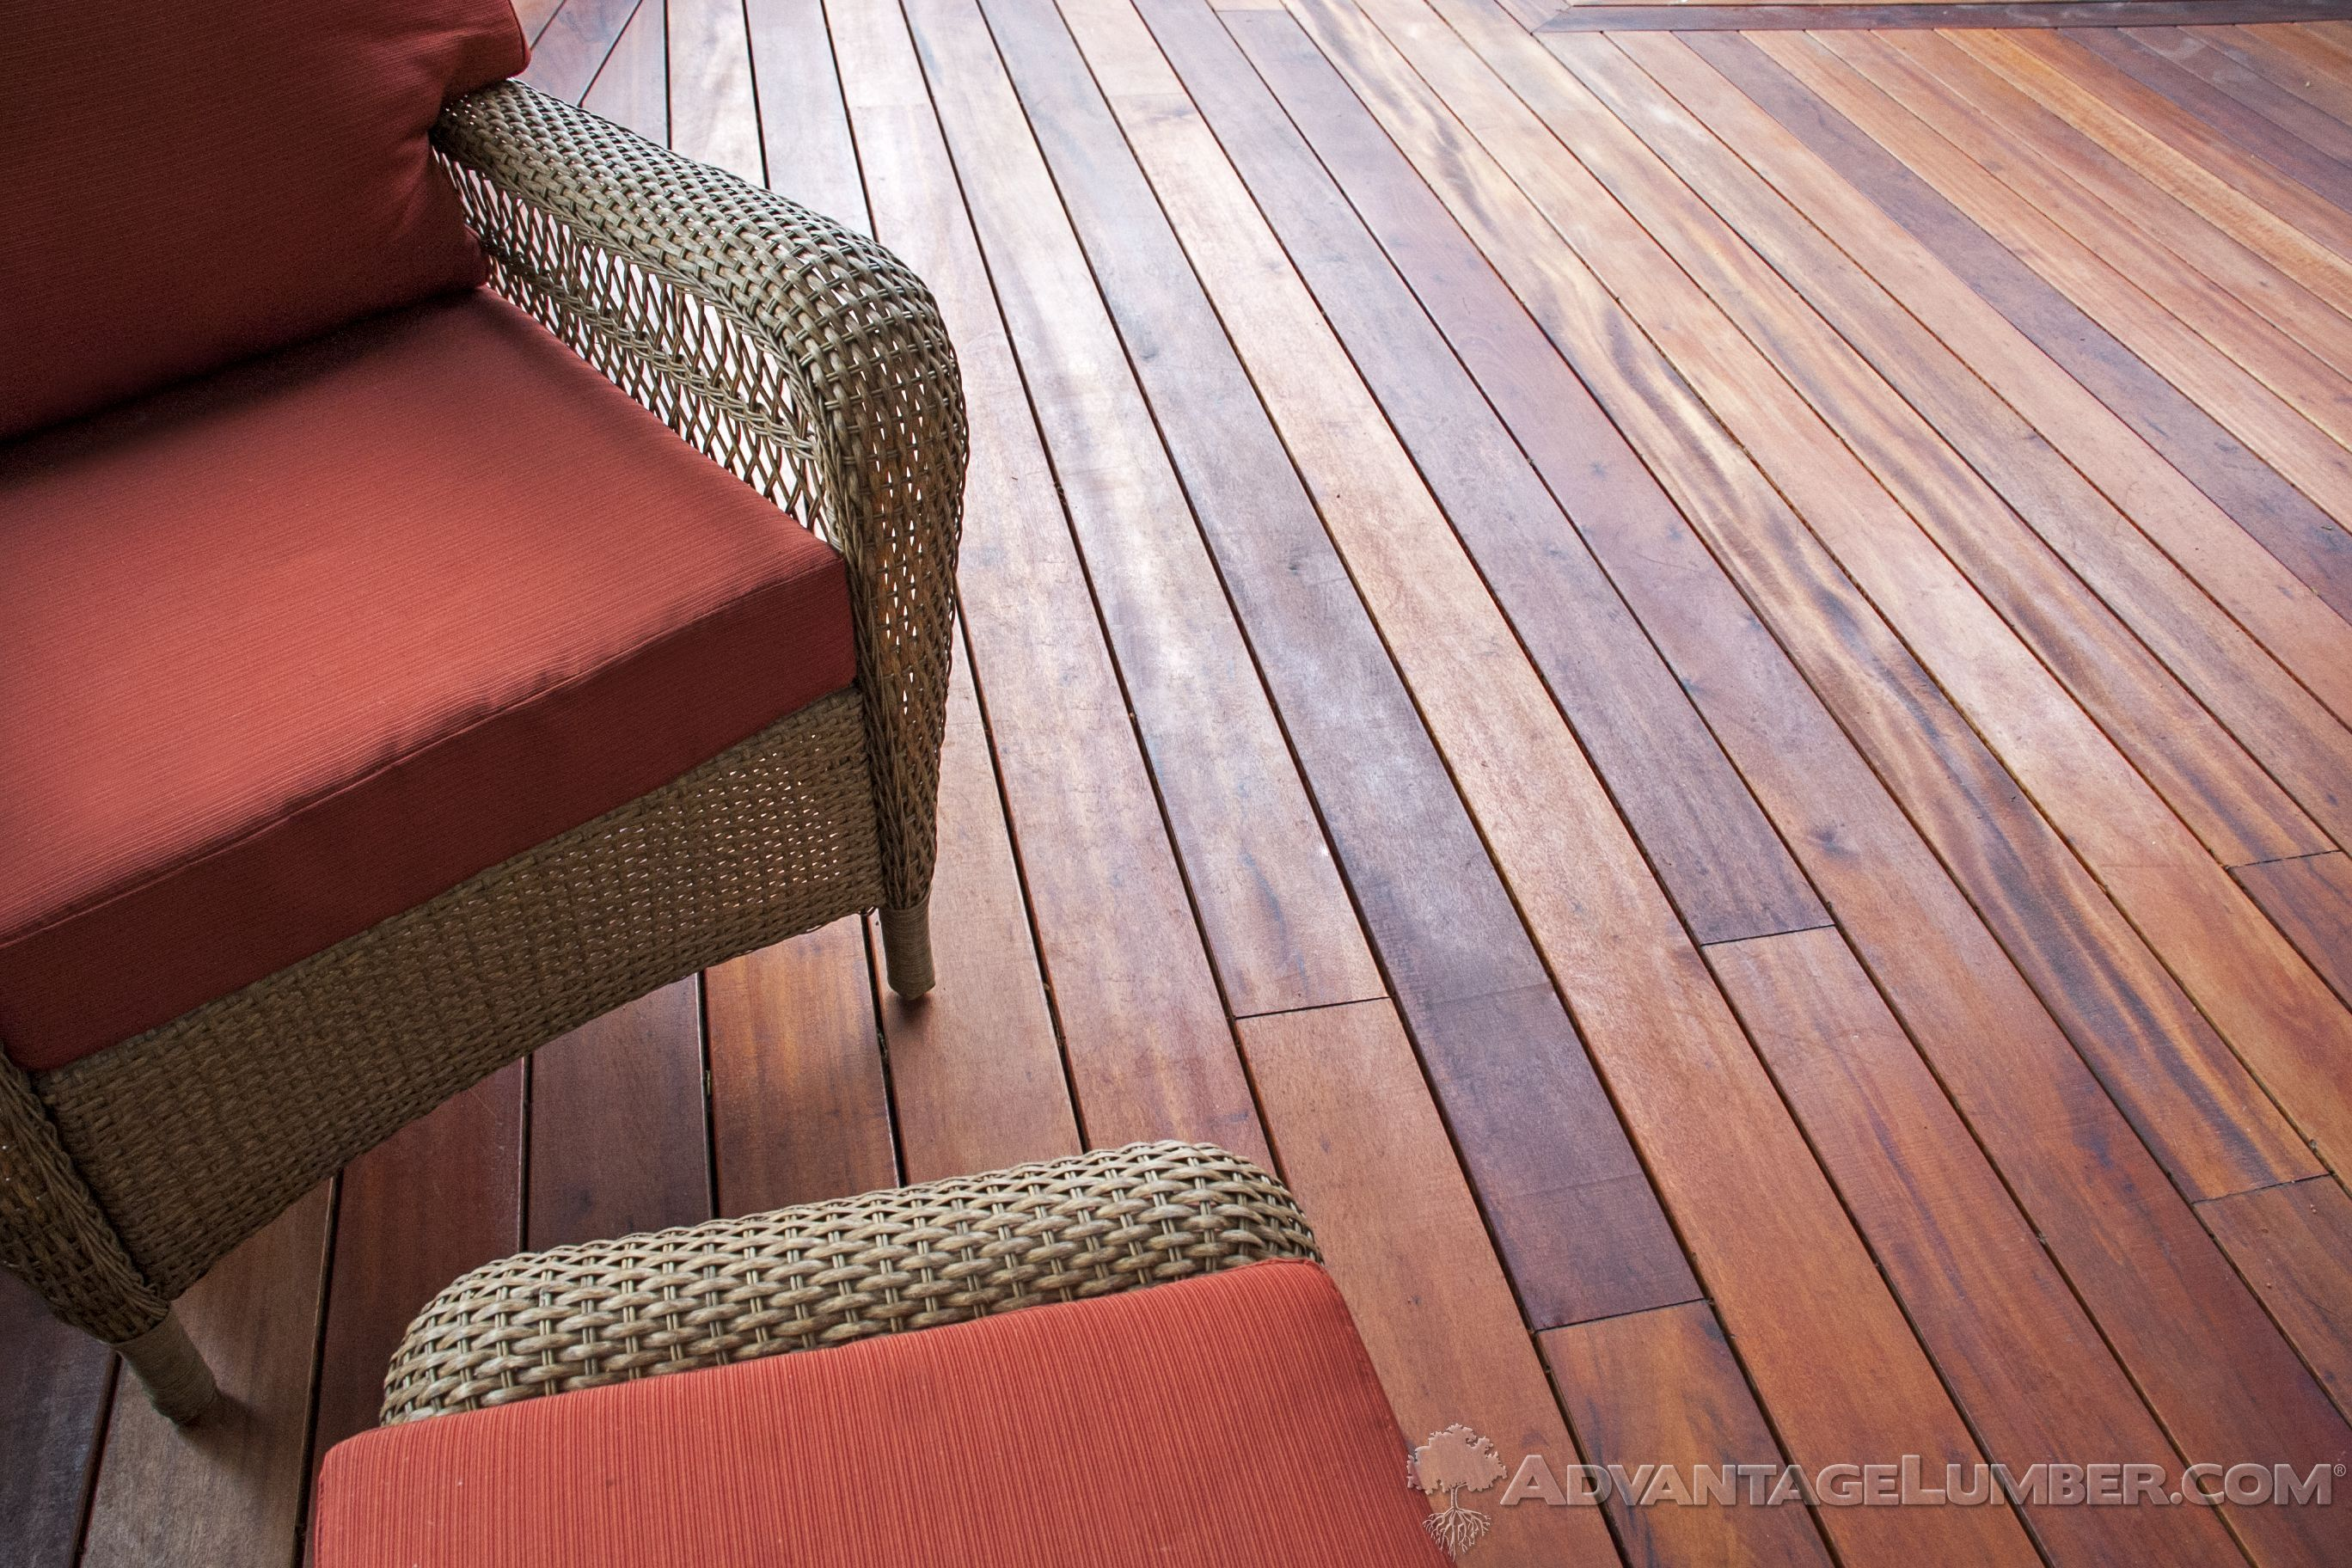 With Its Low Maintenance Qualities And Extended Lifespan You Can Build Your Next Deck Knowing You Ve Chosen The Genu Building A Deck Hardwood Decking Diy Deck